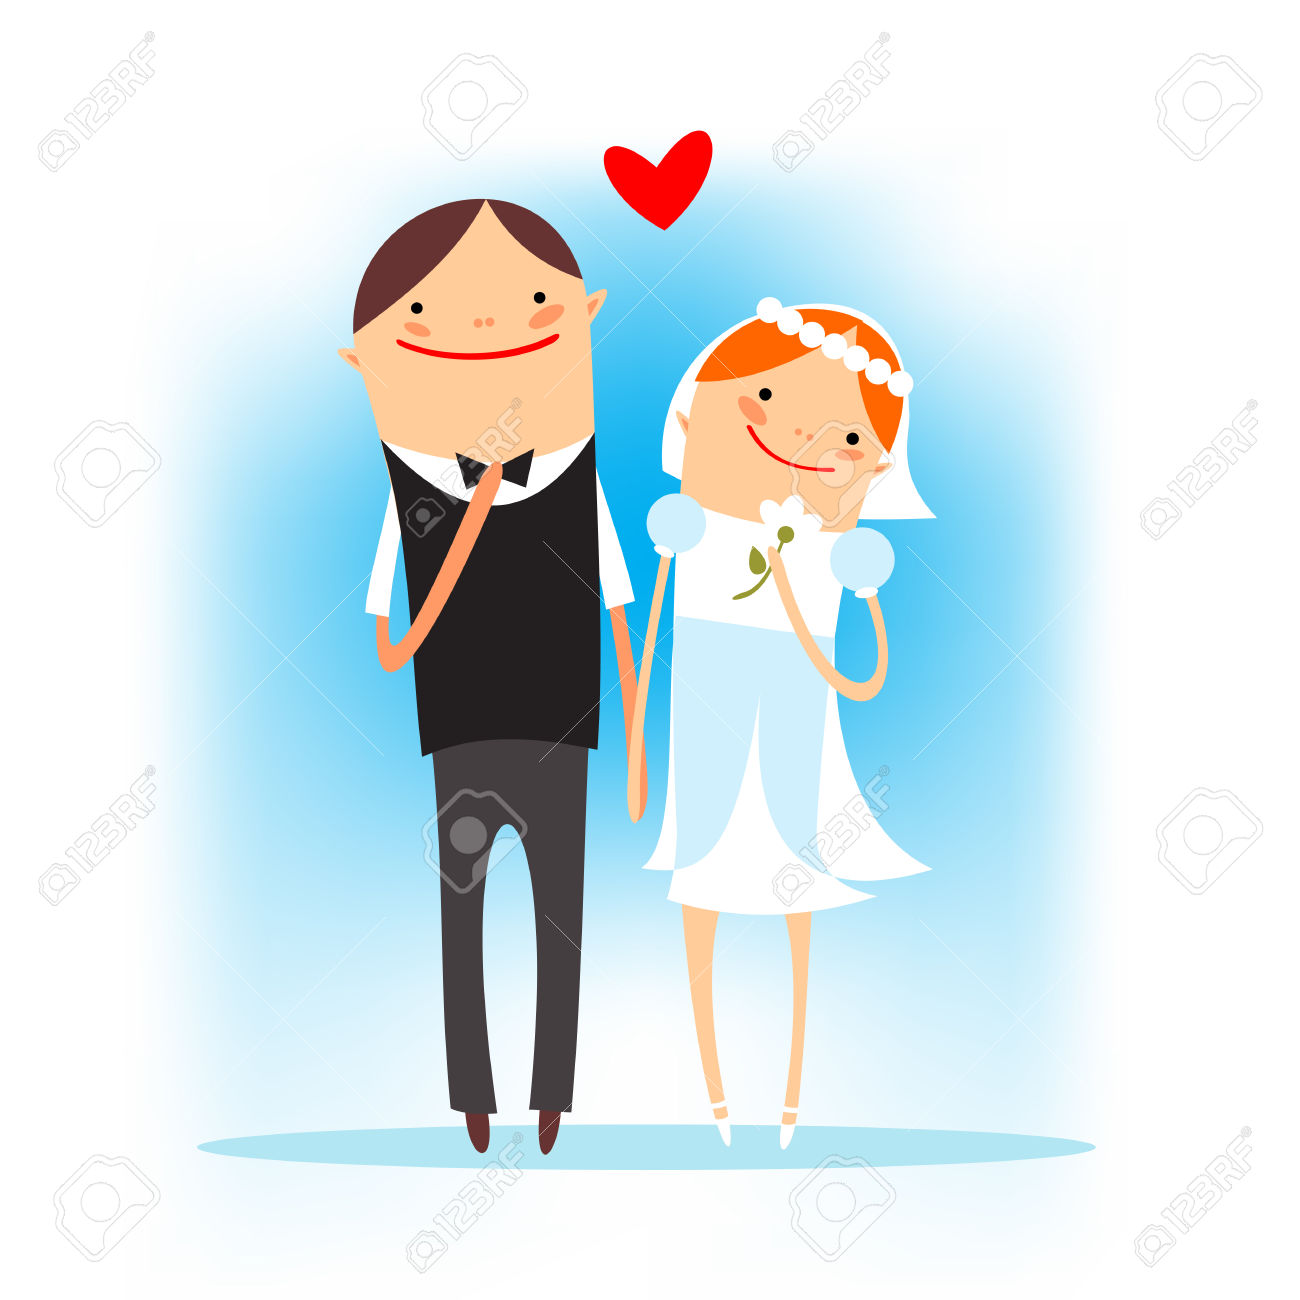 26,240 Married Couple Stock Vector Illustration And Royalty Free.